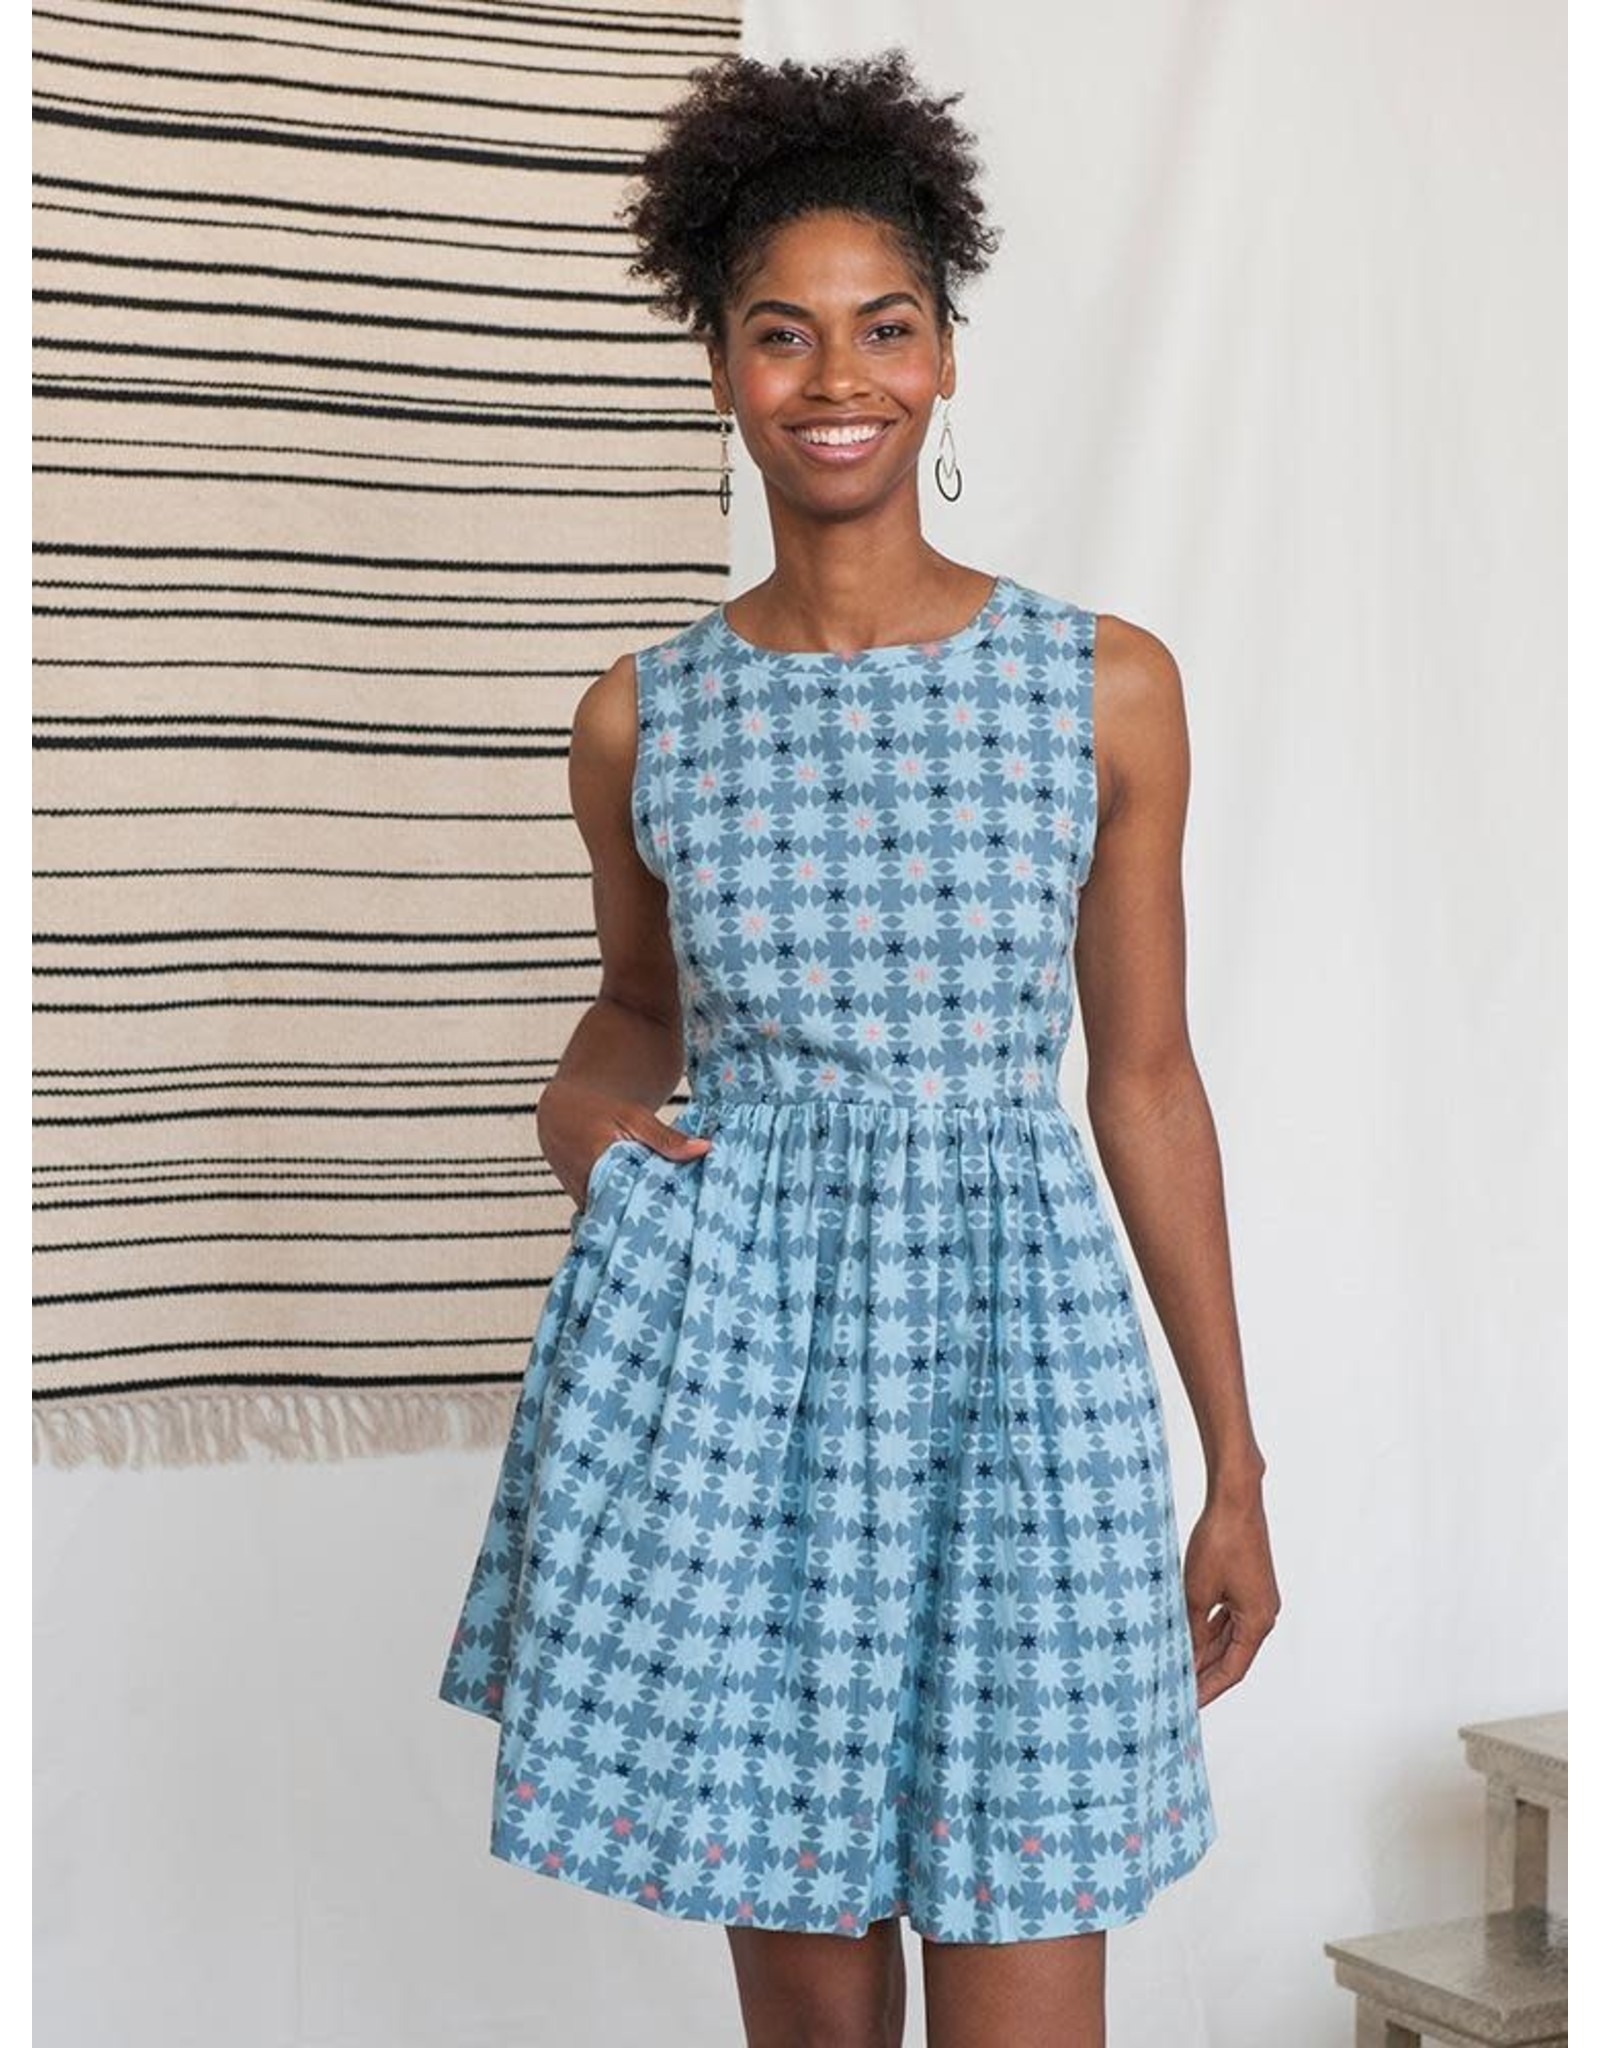 Mata Traders Tic Tac Toe Dress